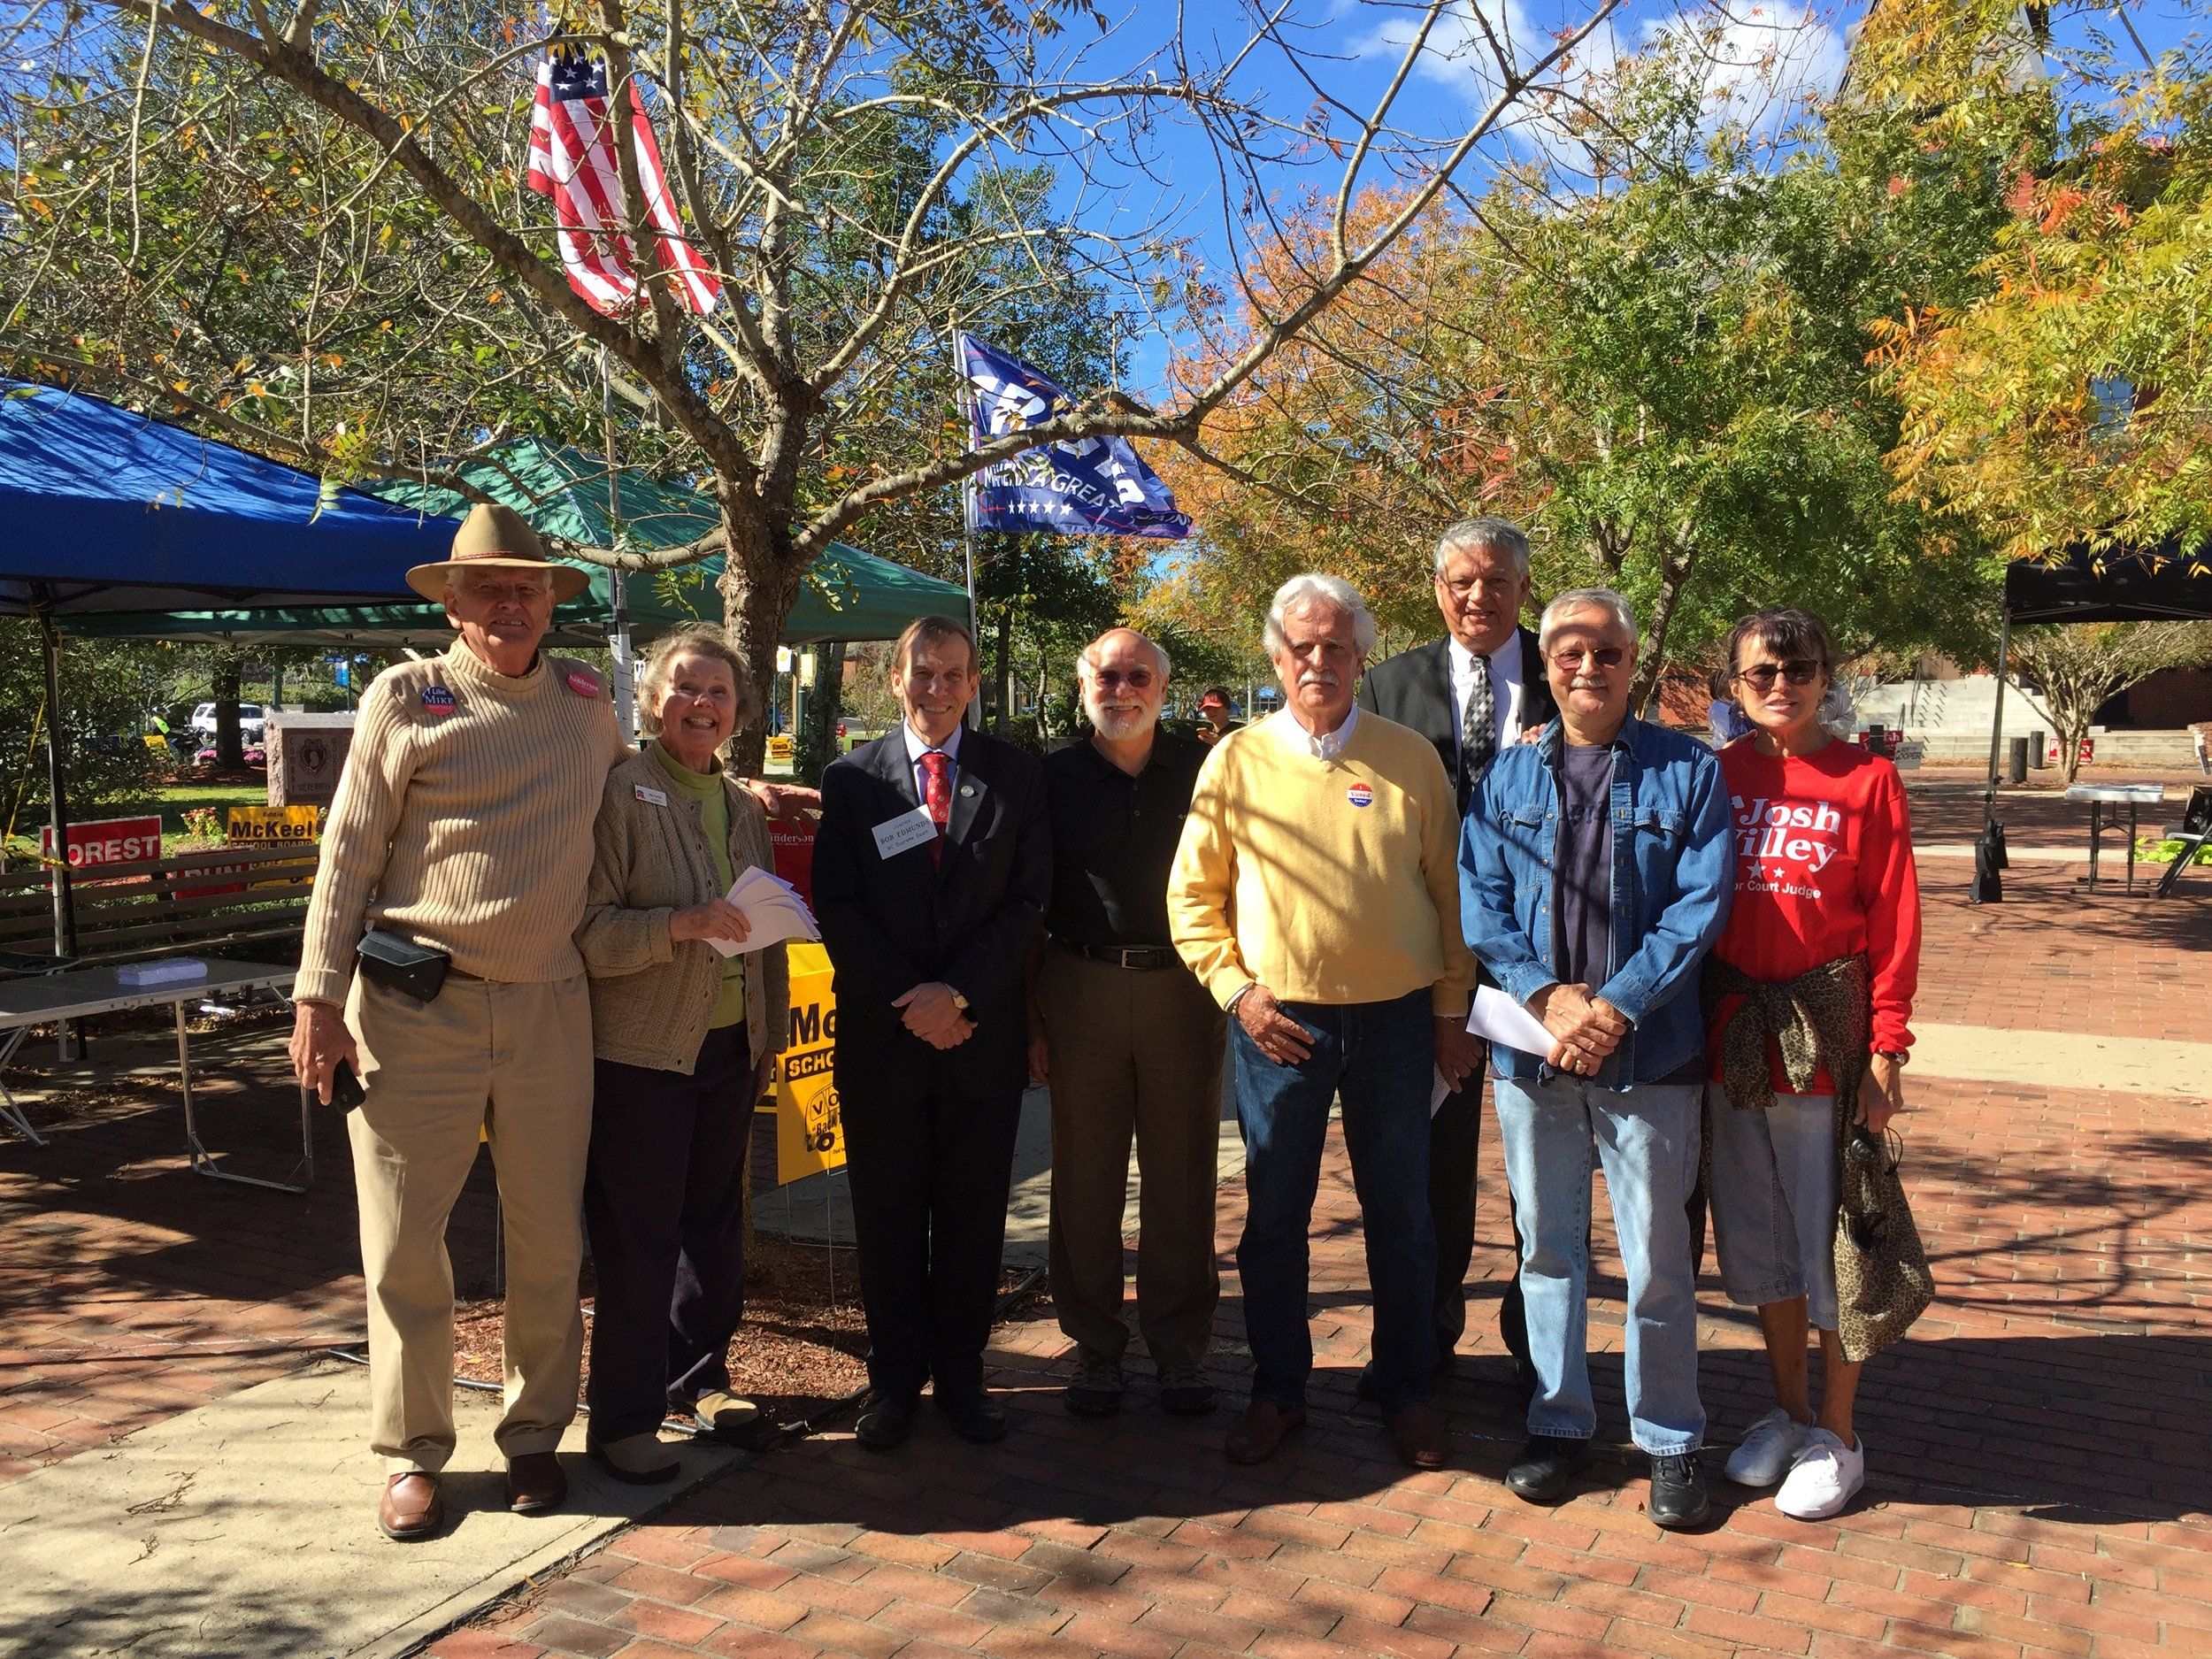 Meeting early voters in New Bern, October 22, 2016.